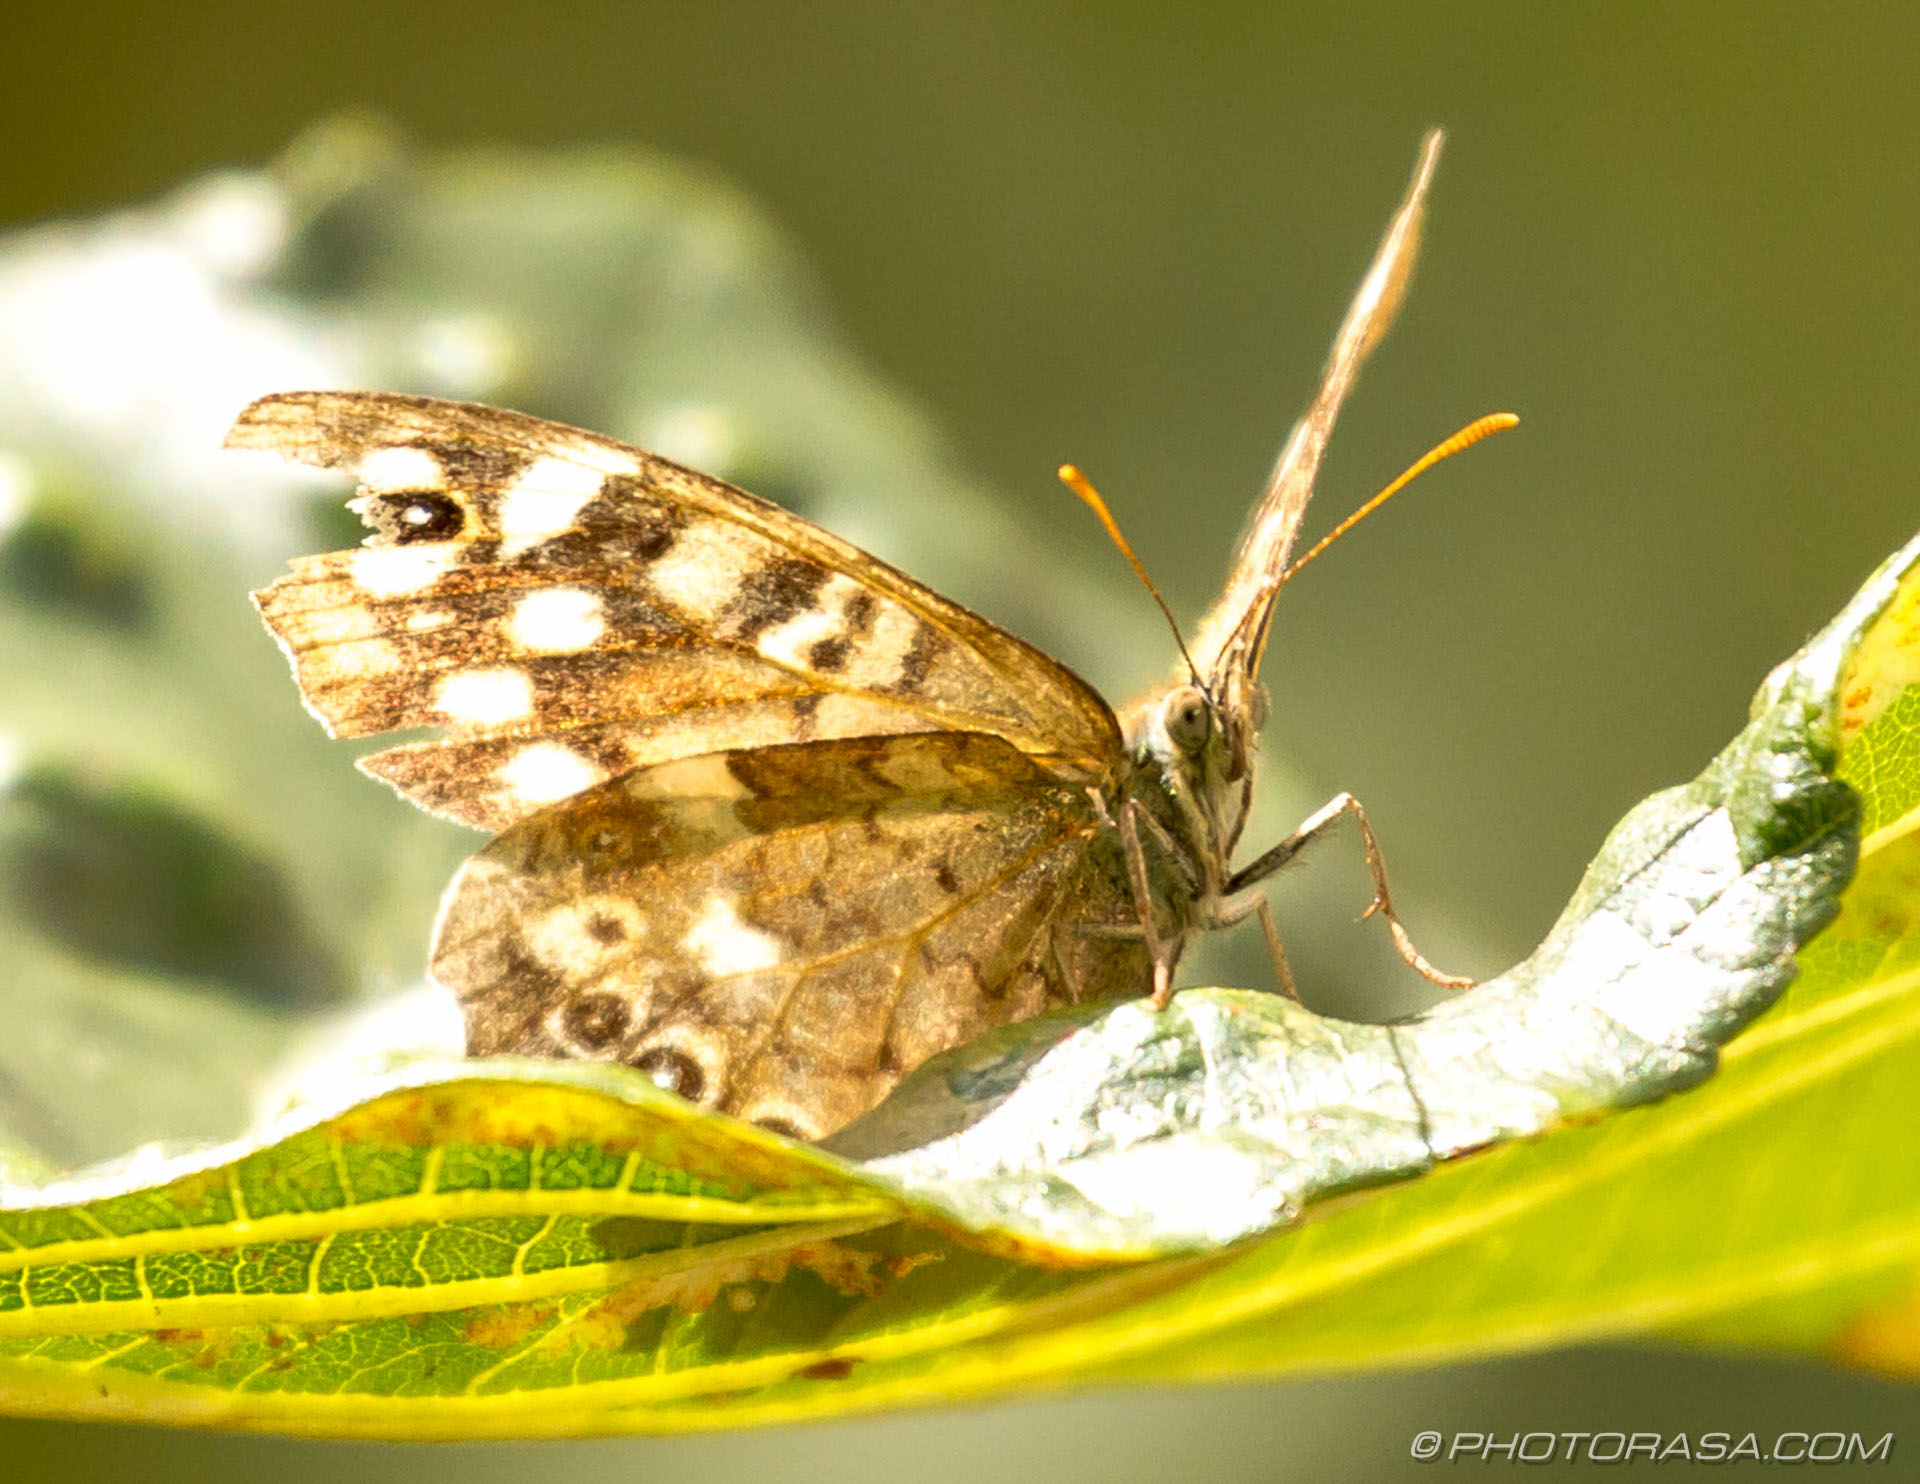 http://photorasa.com/speckled-wood-butterfly/with-damaged-wing/